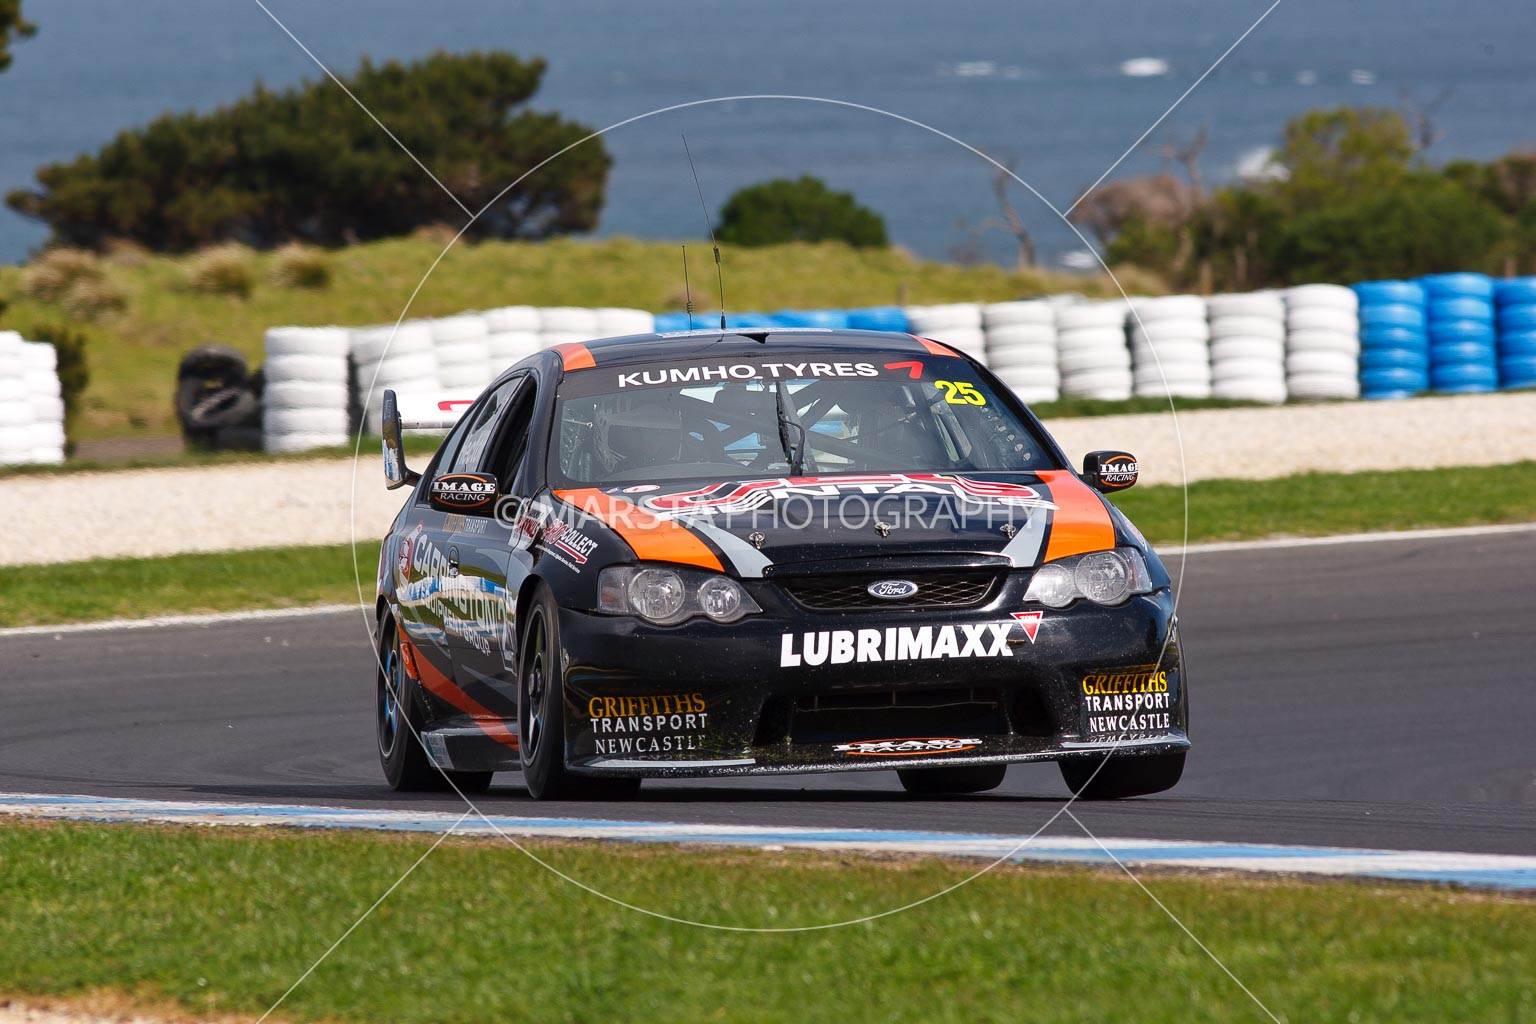 (25);23 September 2012;25;Australia;Ford Falcon BA;Michael Hector;Phillip Island;Shannons Nationals;V8 Touring Cars;VIC;Victoria;auto;motorsport;racing;super telephoto